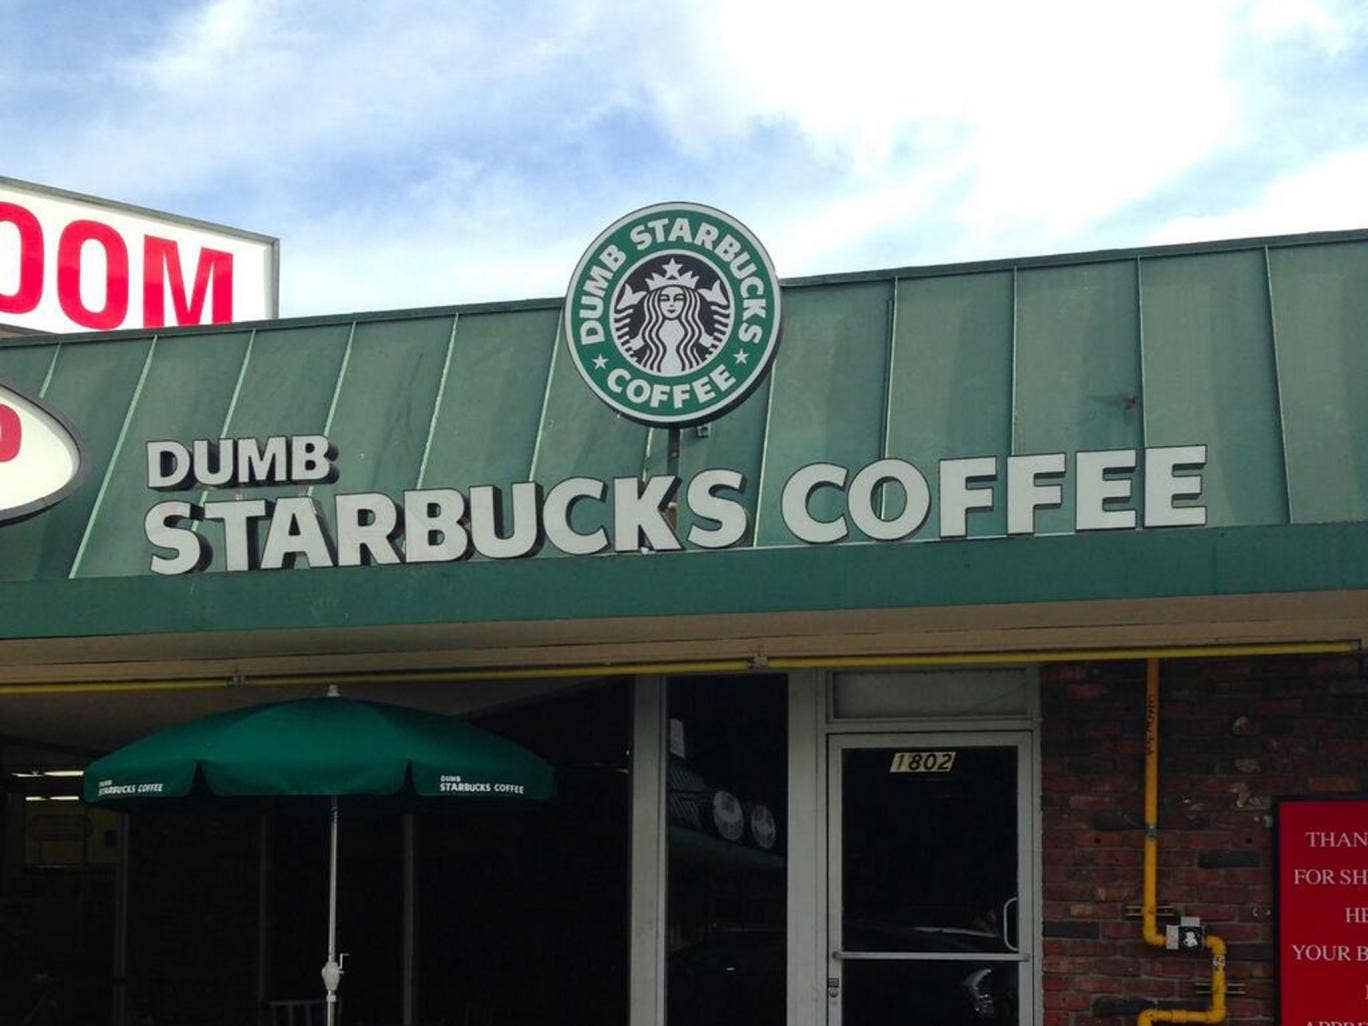 The 'Dumb Starbucks' Twitter feed has already attracted thousands of followers - but will the store be around for long?